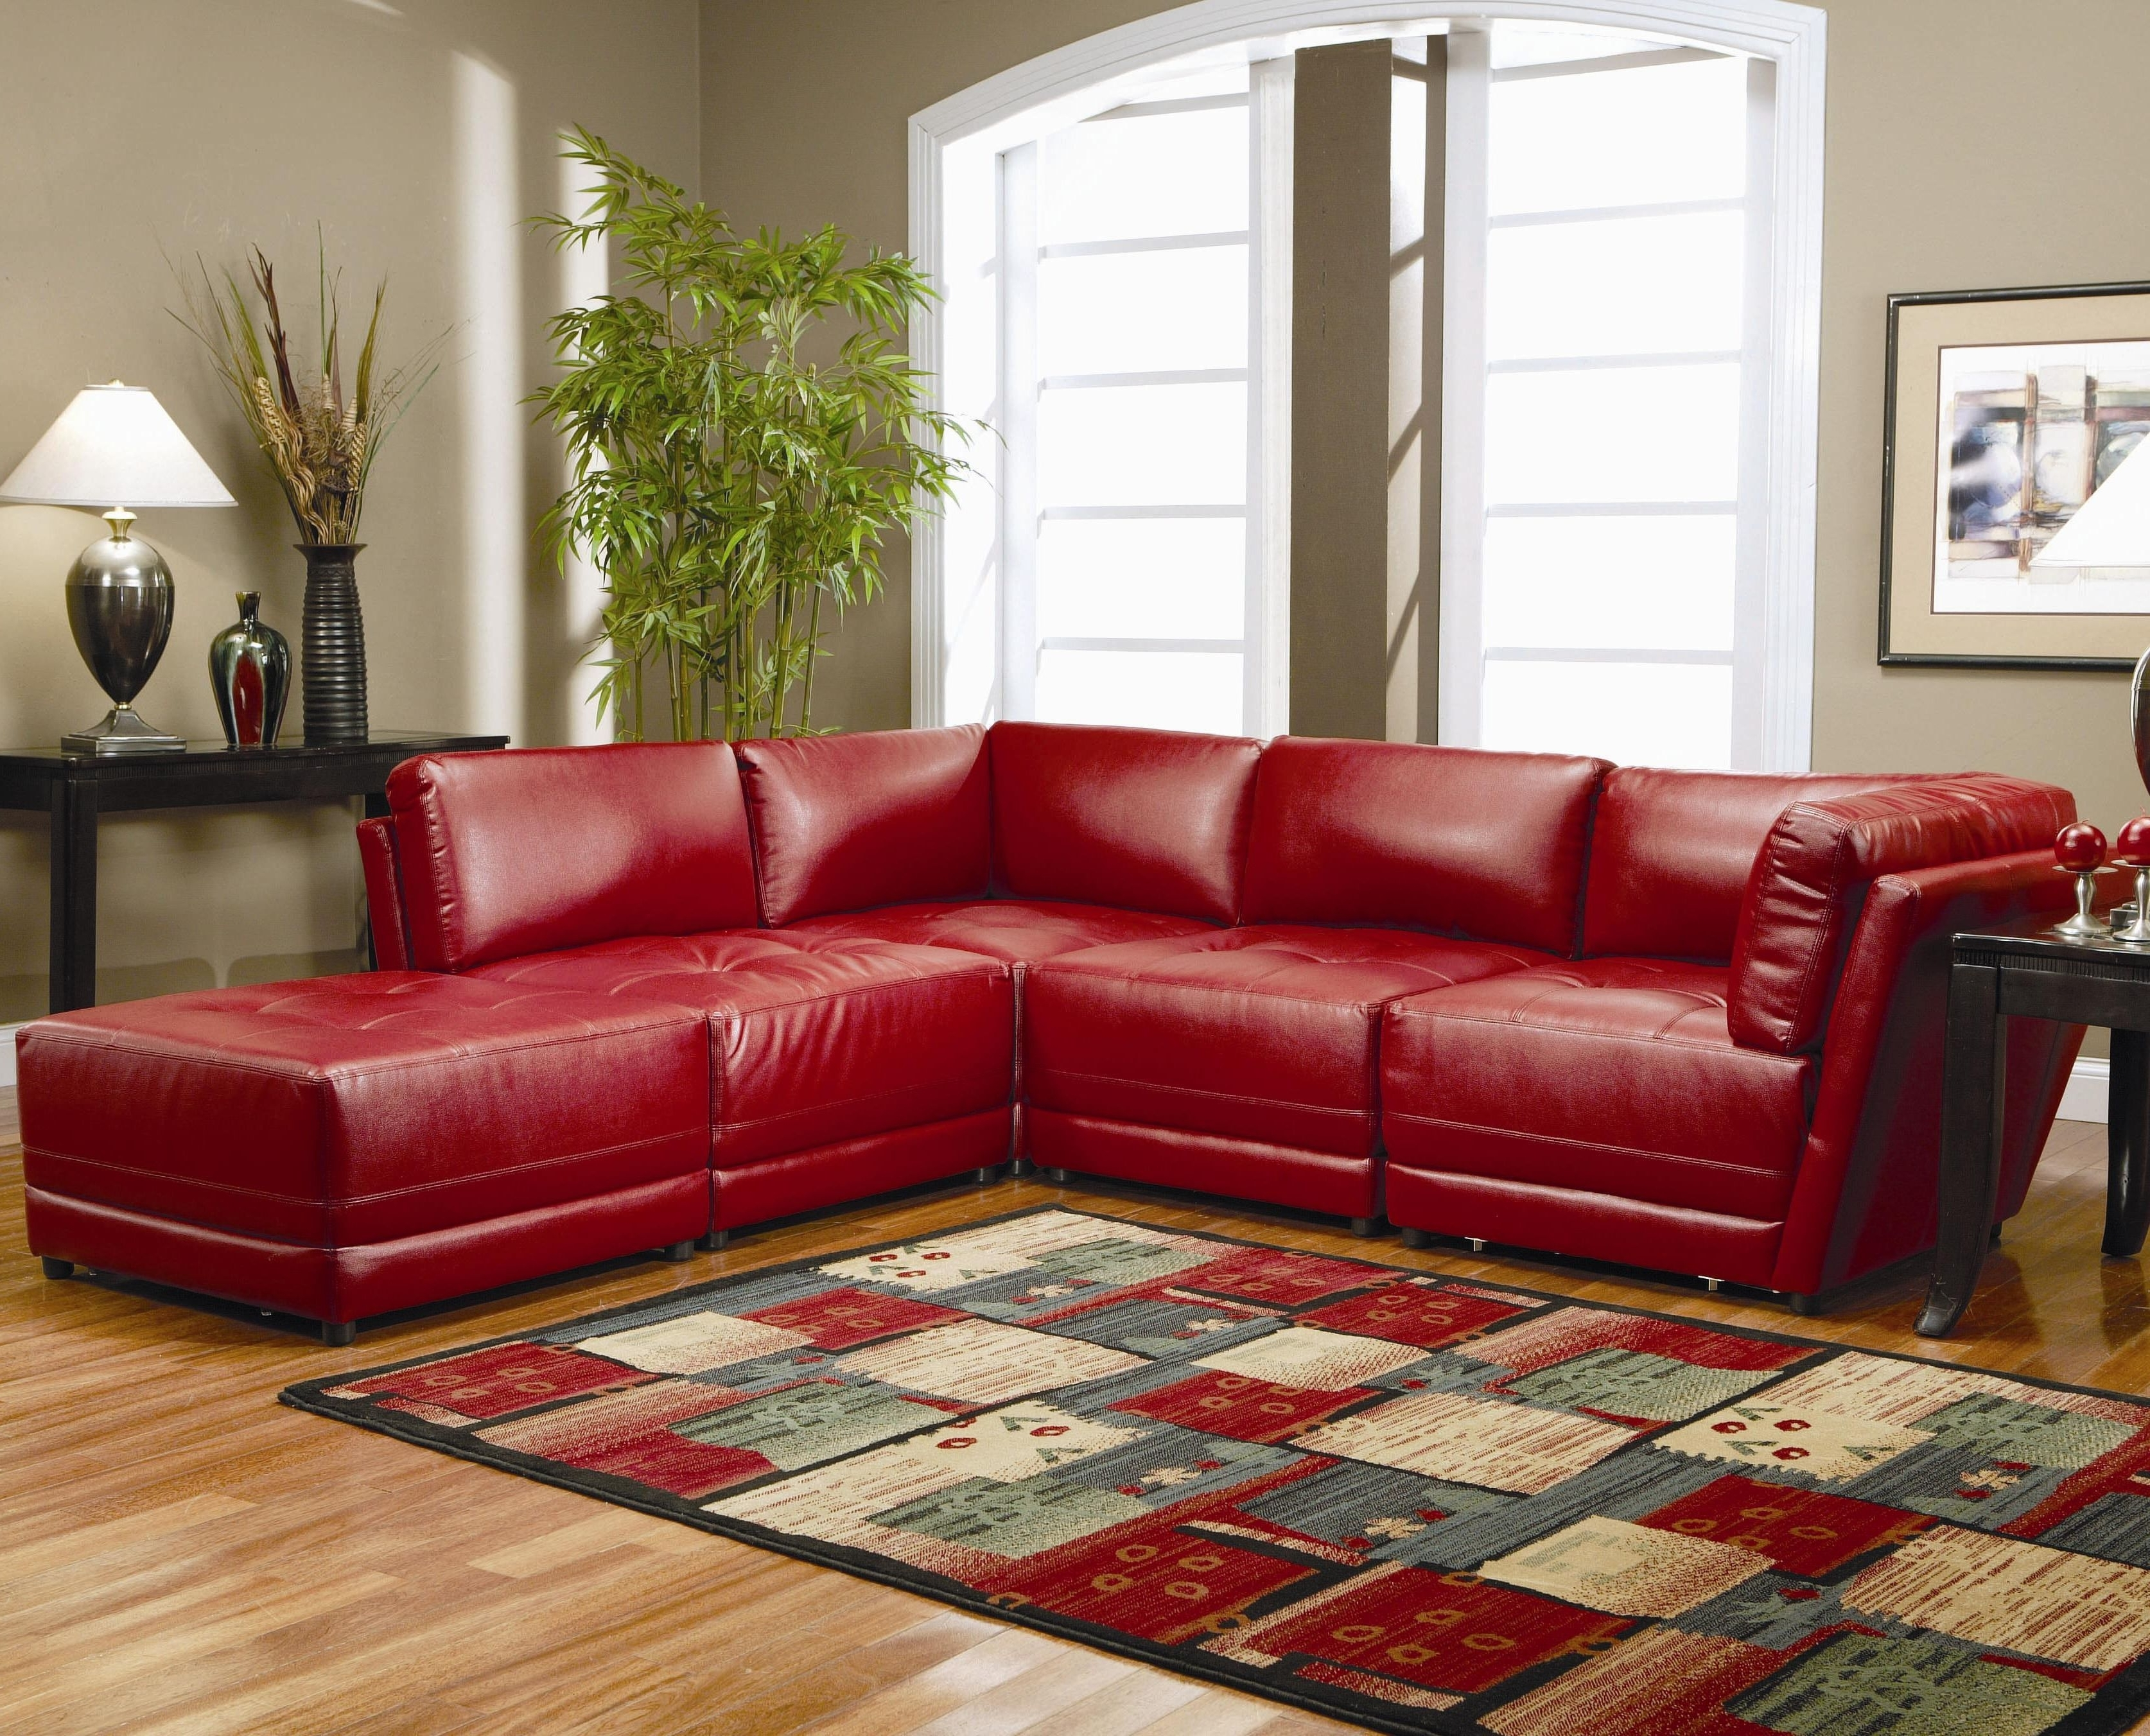 Best And Newest Small Red Leather Sectional Sofas Regarding Furniture : Sofa Gray Leather Sectional Set Sale Together With (View 3 of 15)